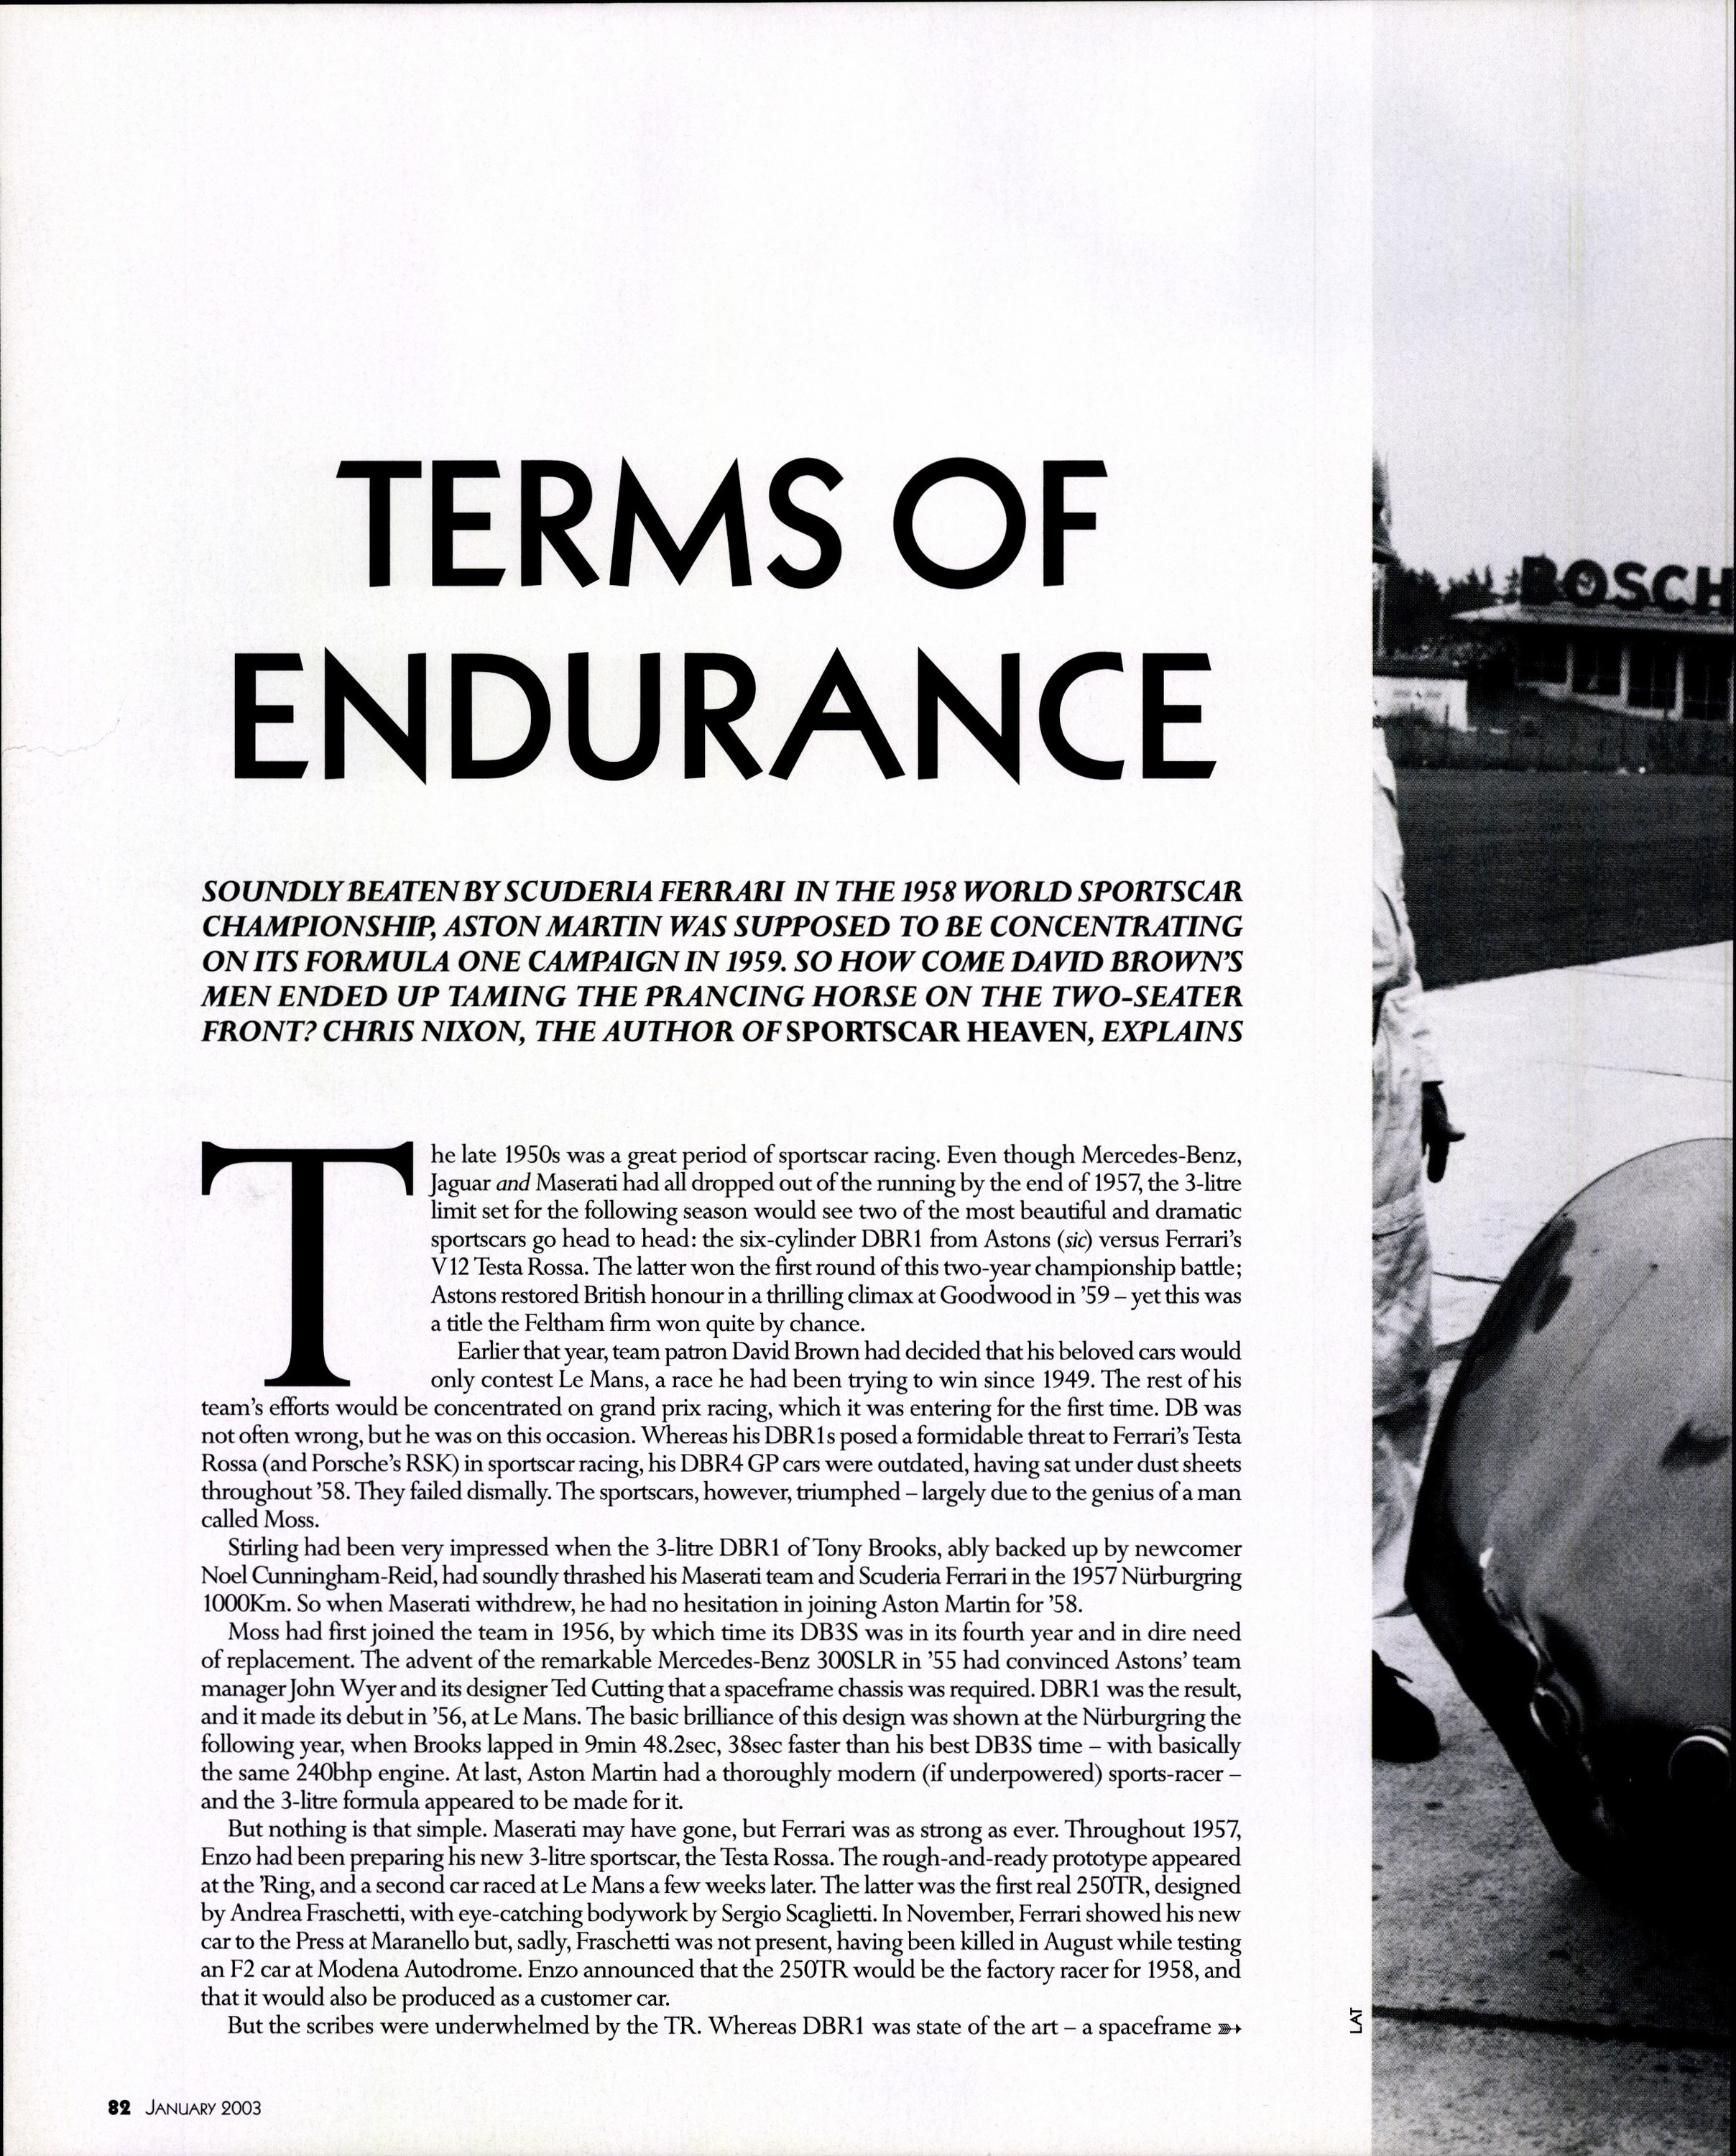 terms of endurance image